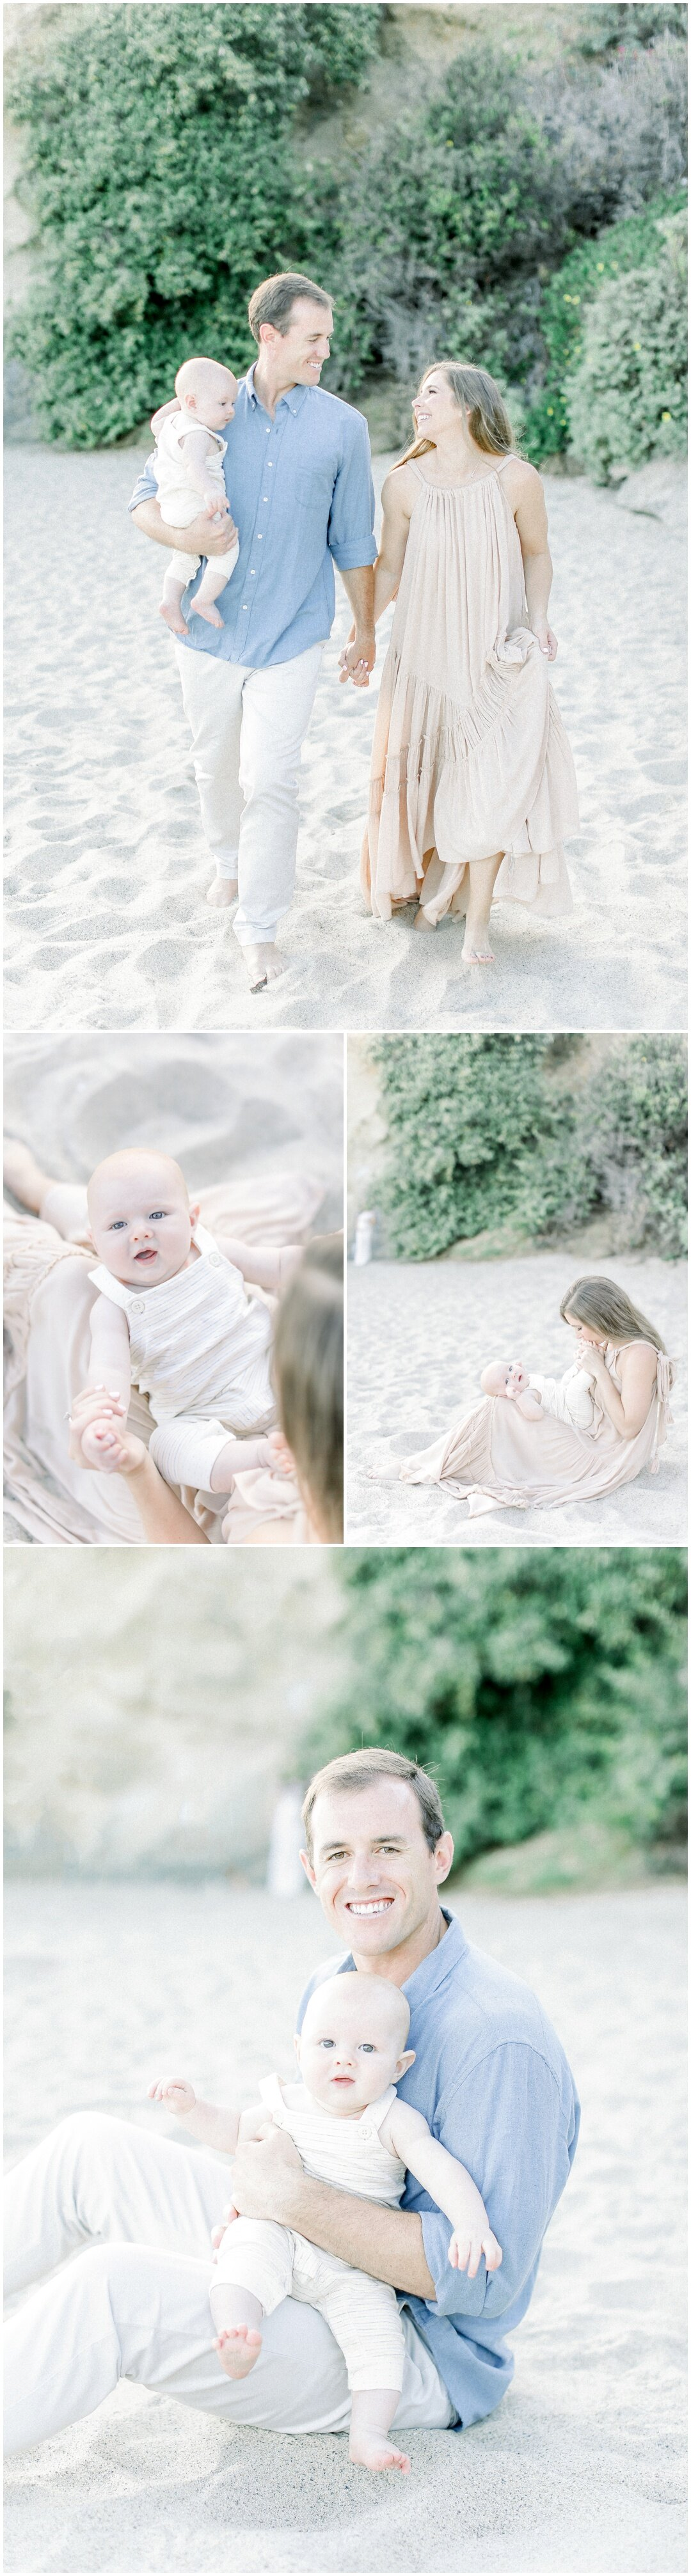 Newport+Beach+Newborn+Maternity+Photographer+Orange+County+Family+Photographer+Cori+Kleckner+Photography+Forgatch+Family+Matt+Kelley+Jack+Forgatch+_4417.jpg